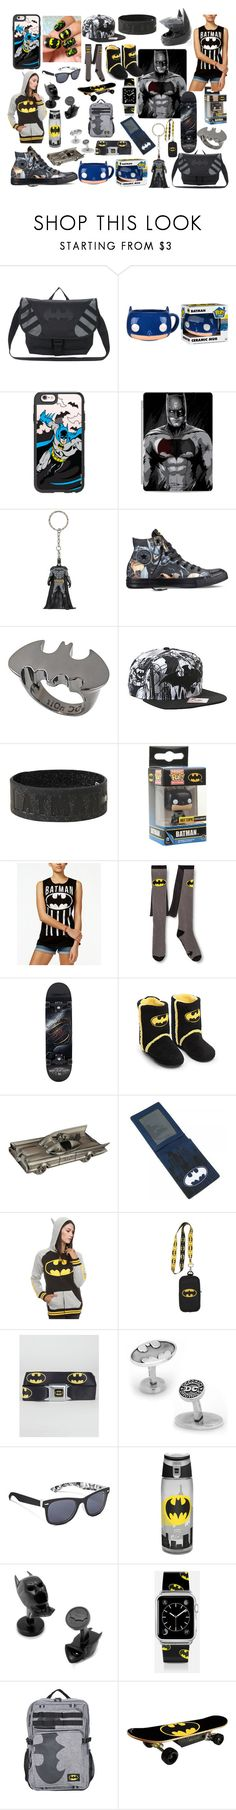 """""""batman"""" by sabortoothtiger1 ❤ liked on Polyvore featuring DC Comics, Funko, Casetify, Hot Topic, Converse, nOir, Bioworld, Ultimate, Buckle-Down and Cufflinks, Inc."""